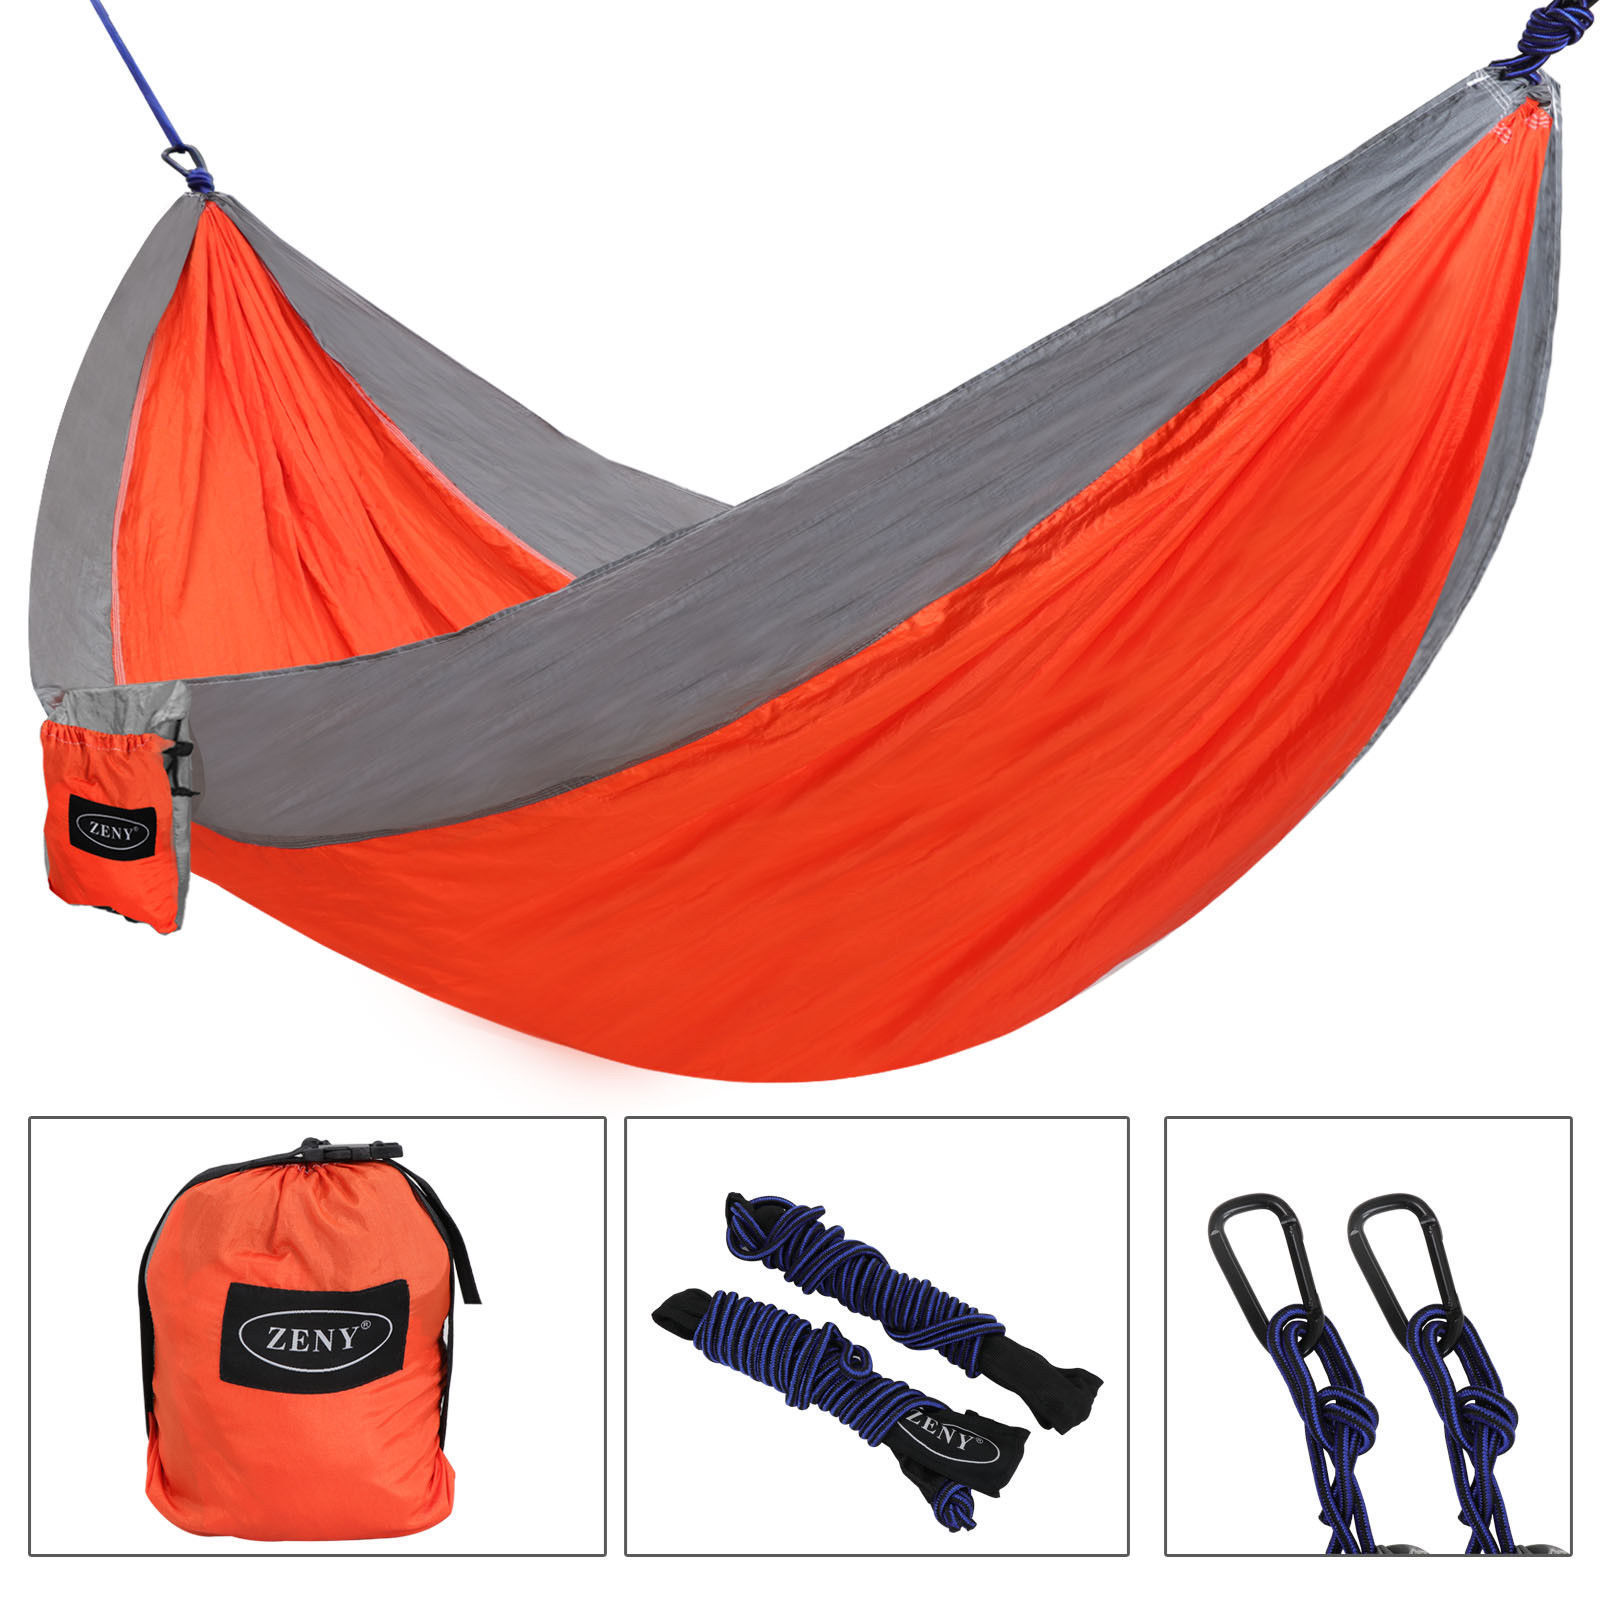 Zeny Double Camping Hanging Hammock With Hammock Tree Straps,Portable Parachute Nylon Hammock For Backpacking travel